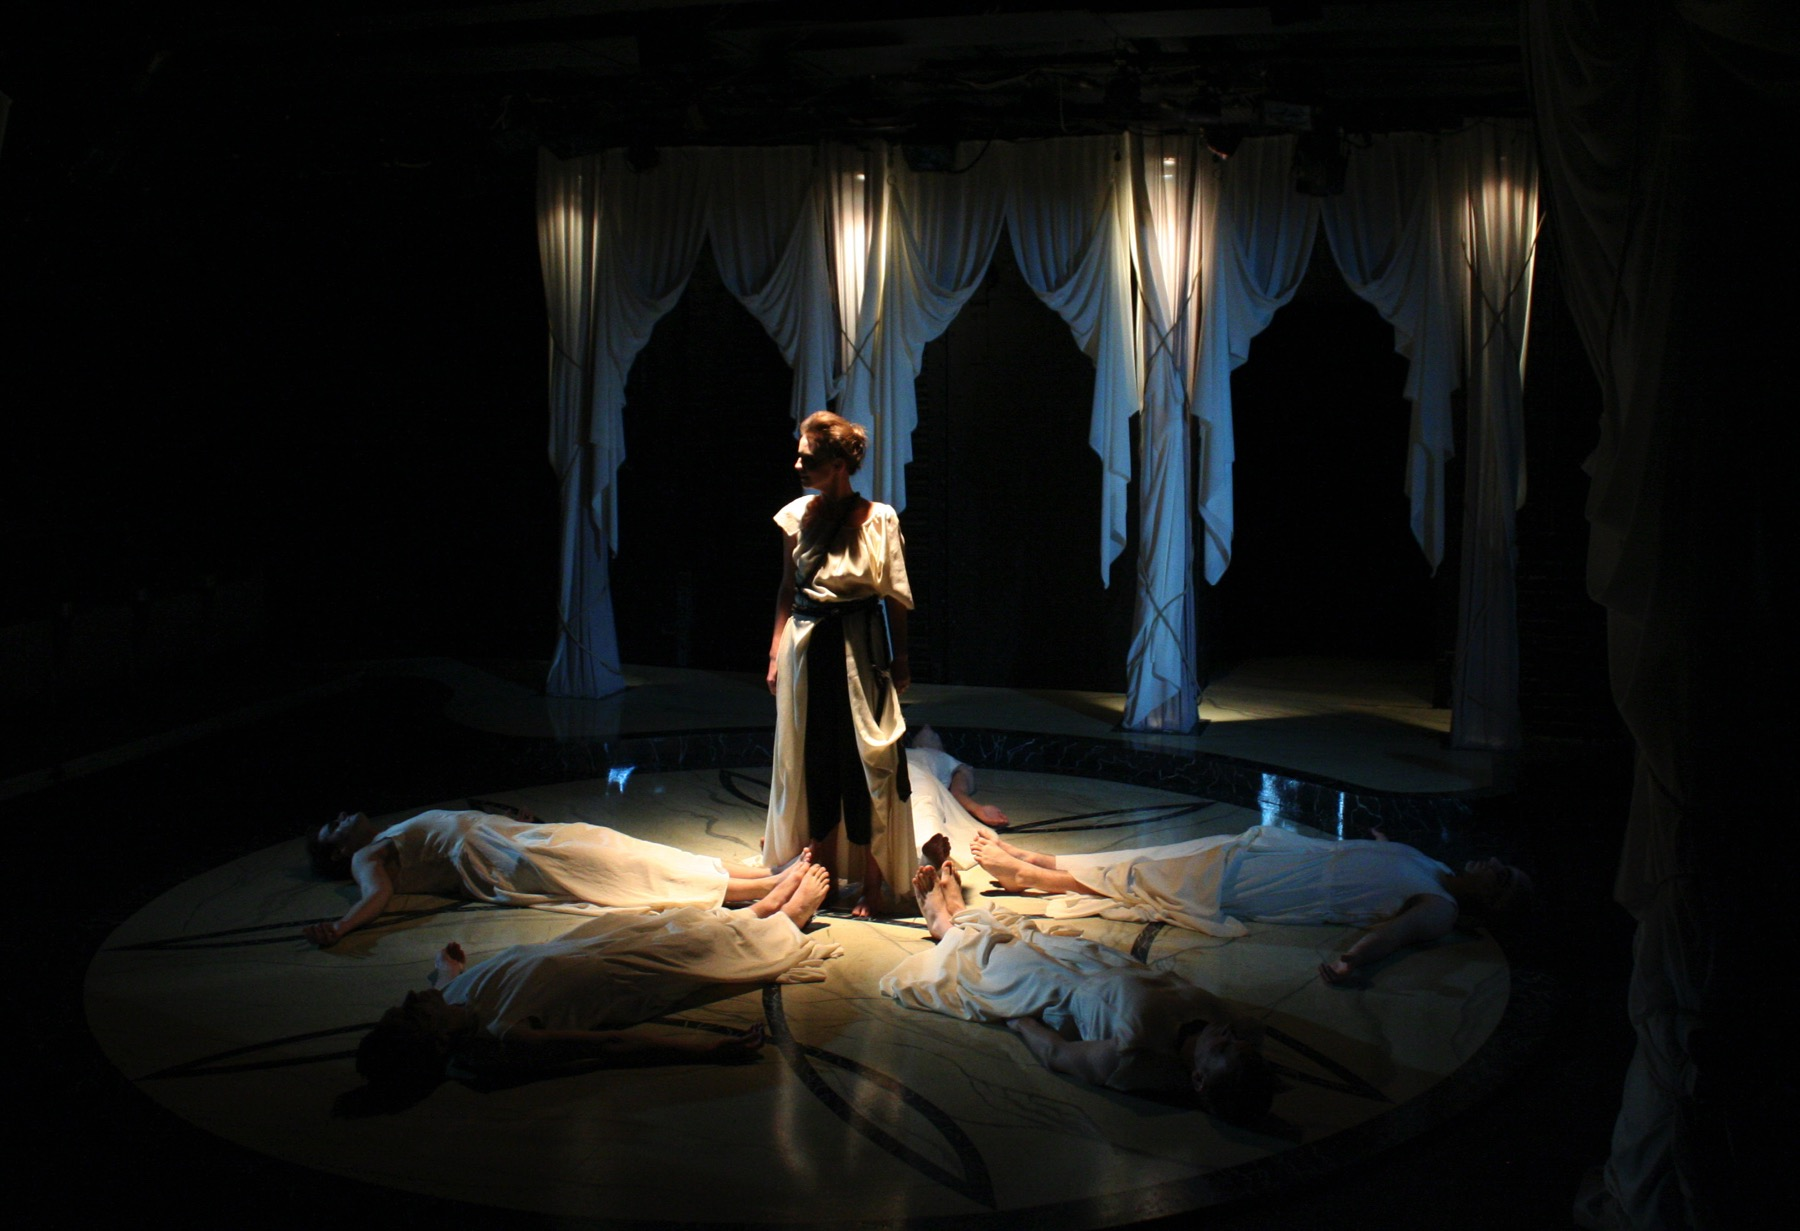 hamlet and the duchess of malfi Join shakespeare bash'd for a staged reading by one of the period's most notorious playwrights, john webster, and his tragedy the duchess of malfi.